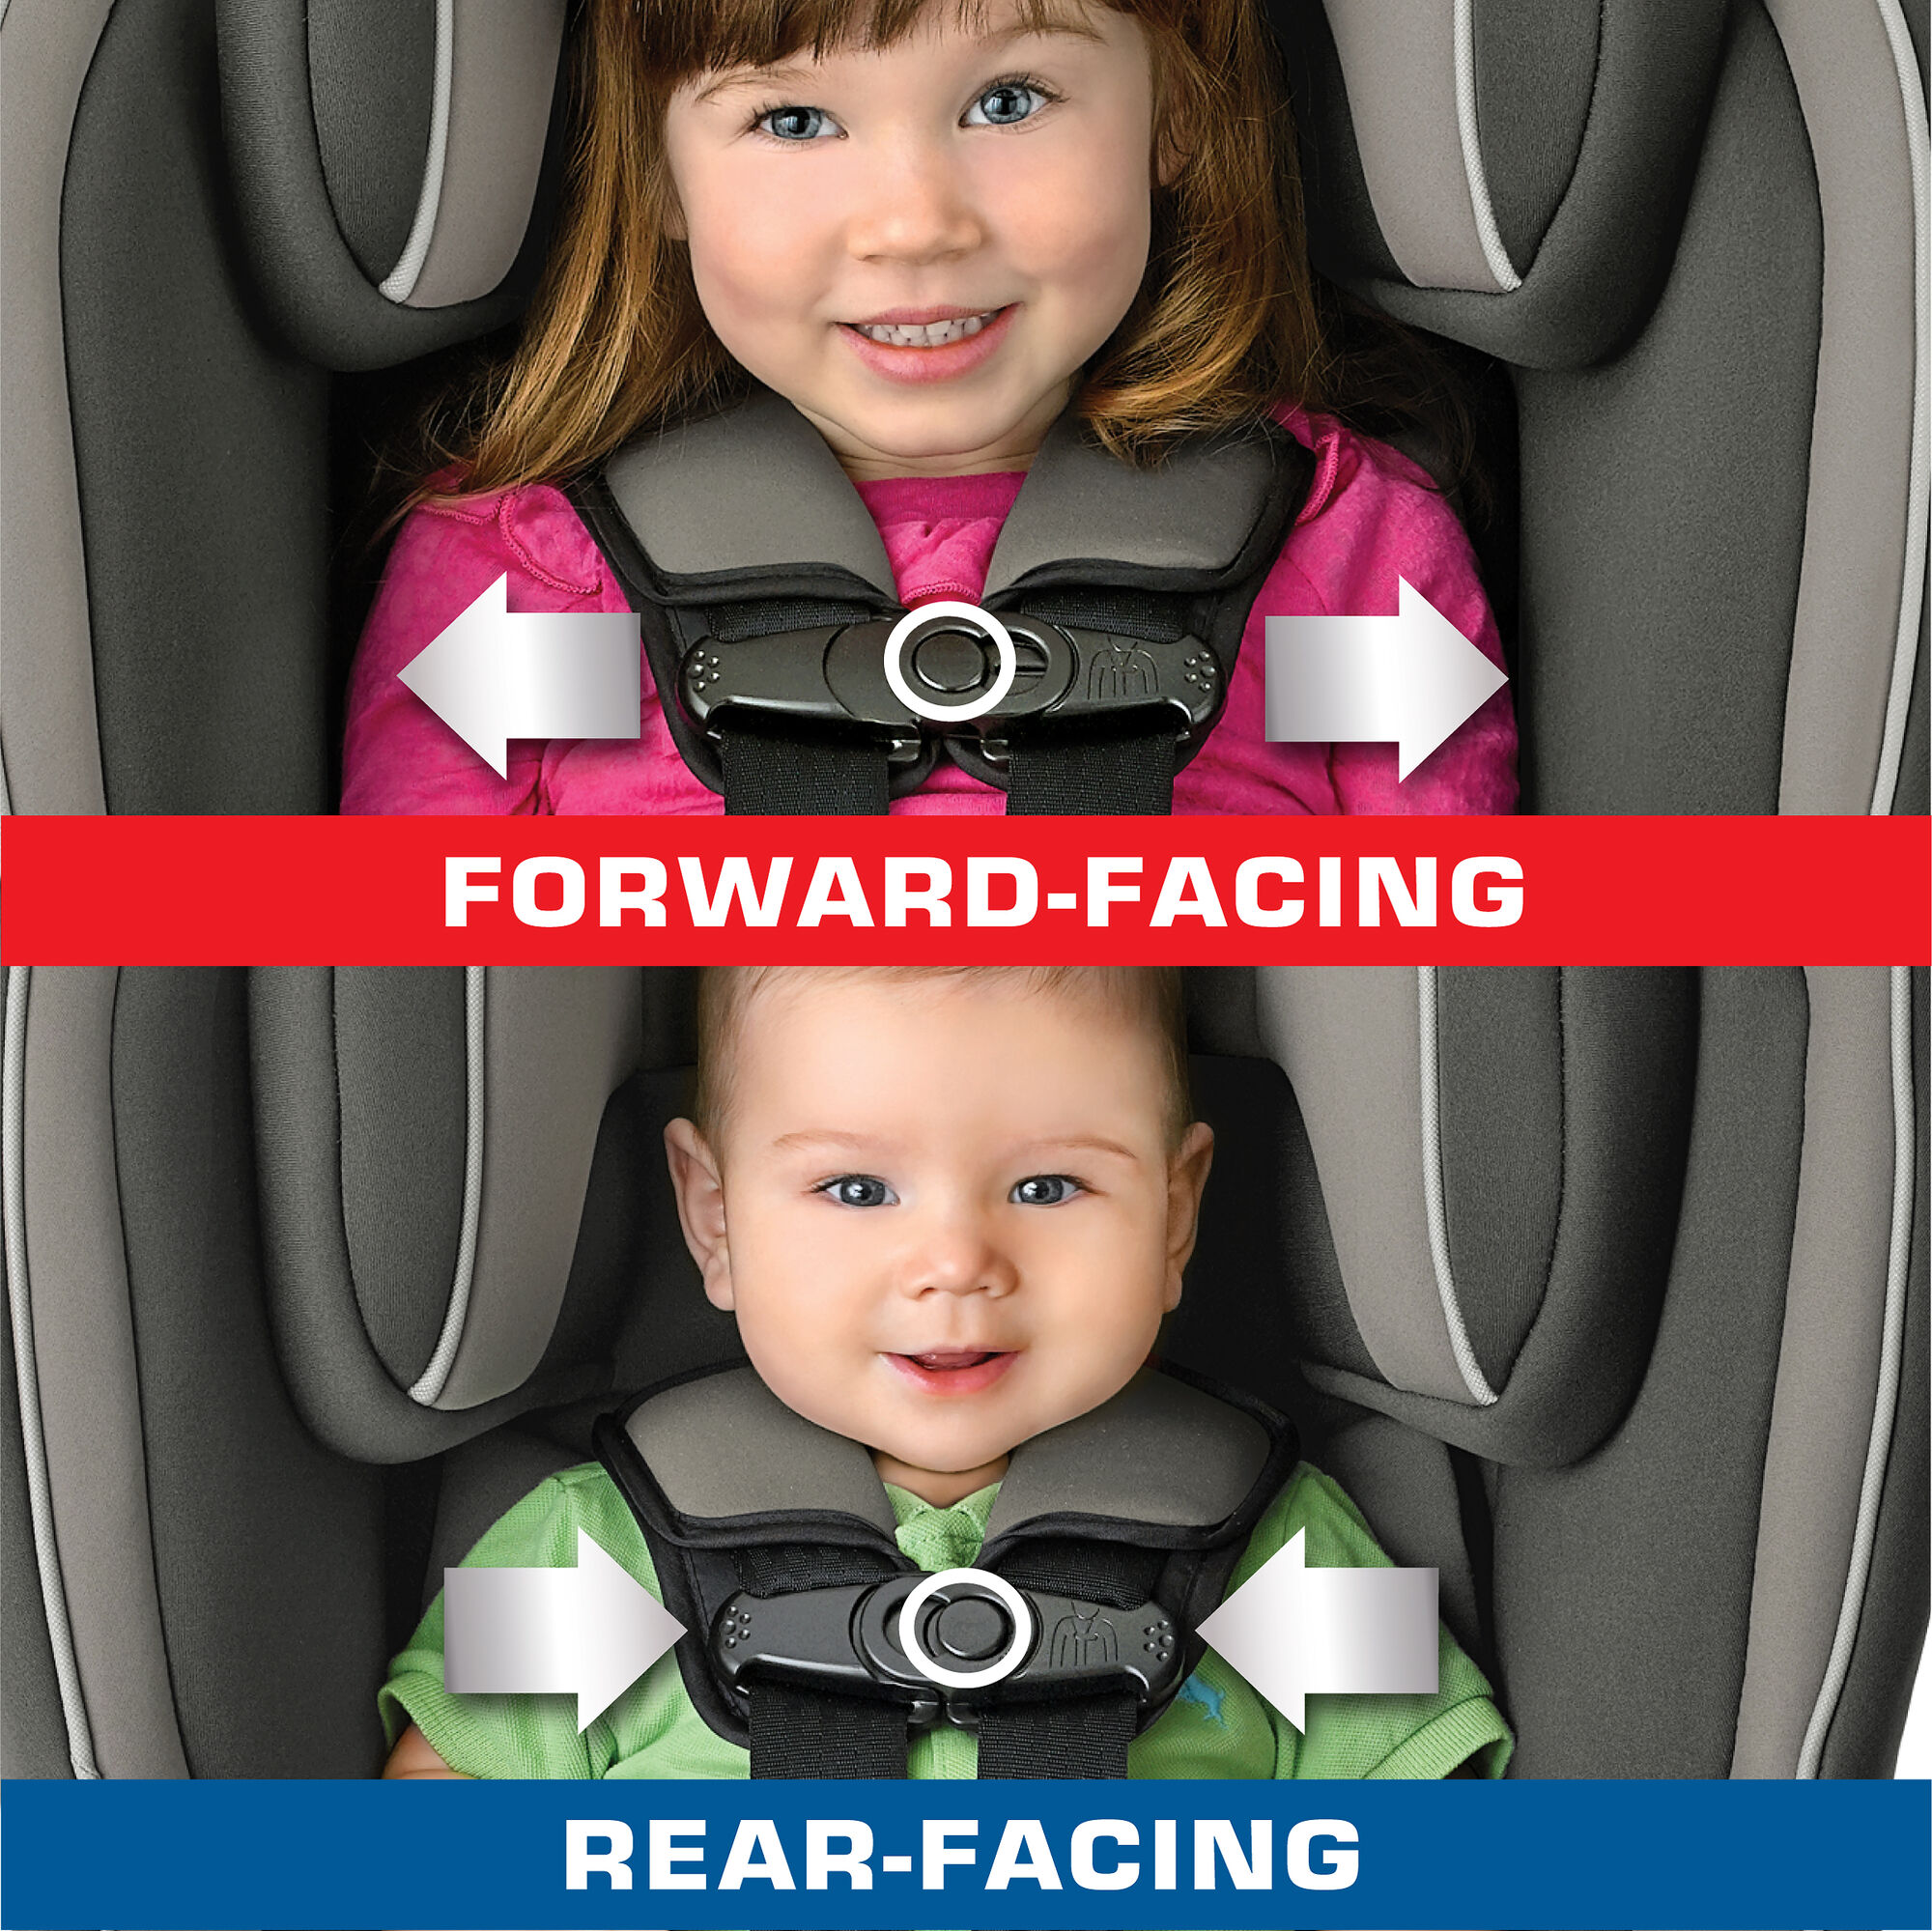 Nextfit Convertible Car Seat A 2 Position Chest Clip Provides More Accurate Fit For Infants And Toddlers In